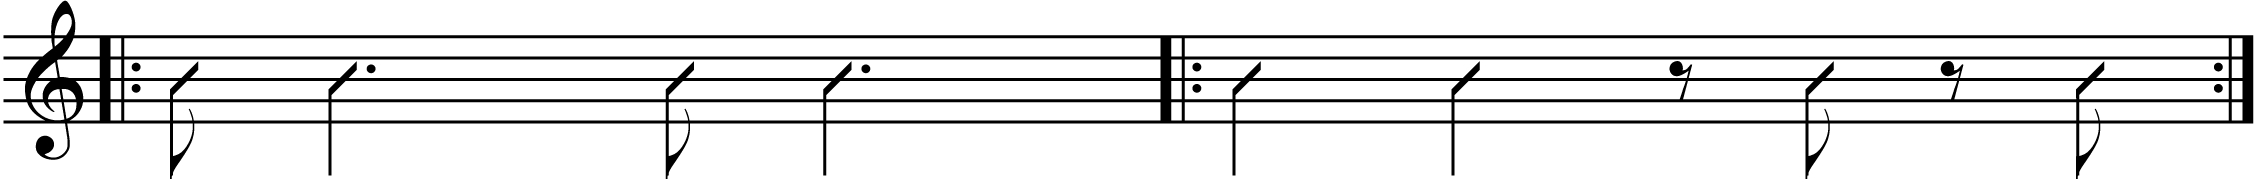 some syncopated rhythms.